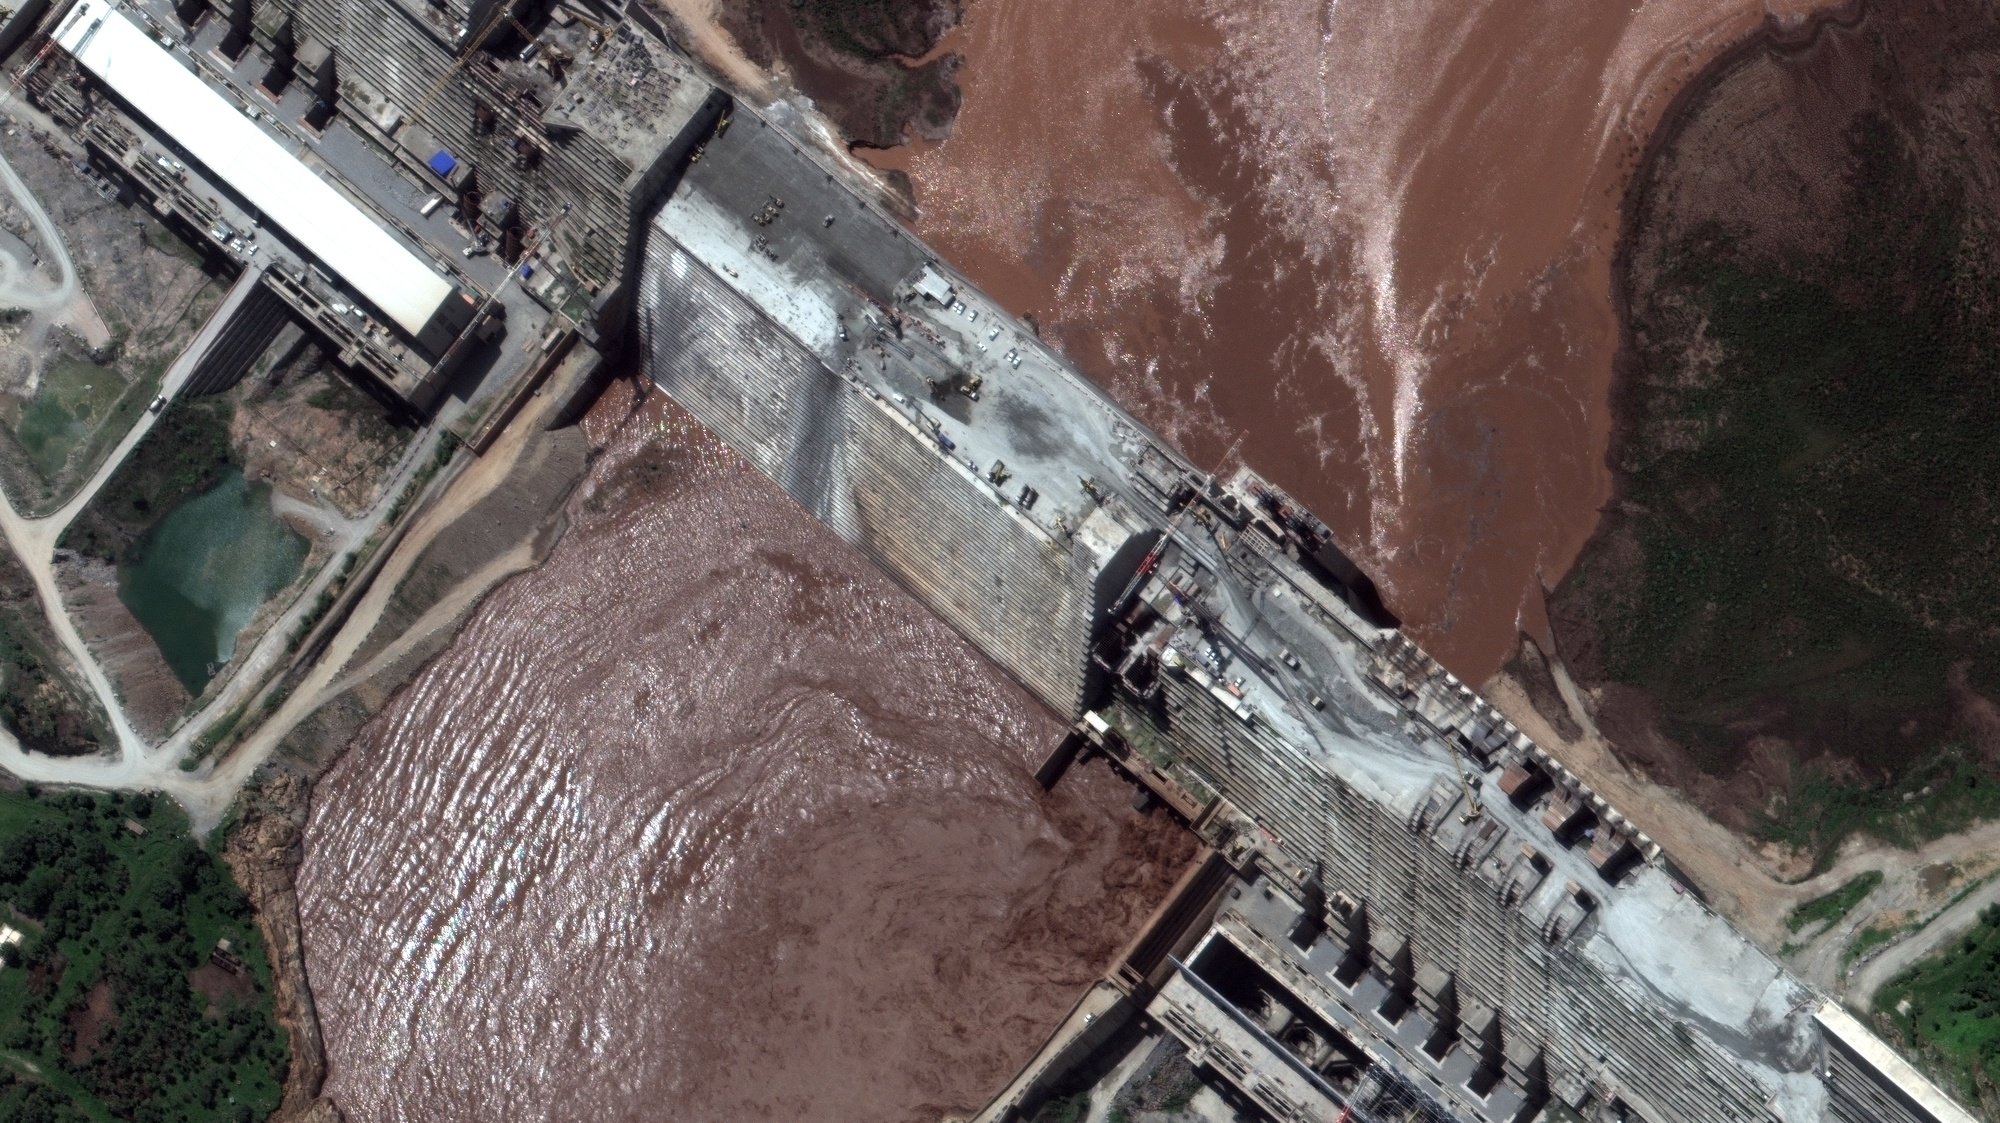 epa08548879 A satellite image made available by MAXAR Technologies shows a close-up view of the Grand Ethiopian Renaissance Dam (GERD) and the Blue Nile River, in the Benishangul-Gumuz region of Ethiopia, 26 June 2020 (issued 16 July 2020). The GERD dam on the Blue Nile River in Ethiopia has been under construction since 2011. The project affects Sudan and Egypt as the Blue Nile river flows north from the dam and is of vital importance to the Nile River. Recent satellite imagery revealed a large reservoir that started to fill behind the dam.  EPA/MAXAR TECHNOLOGIES HANDOUT -- MANDATORY CREDIT: SATELLITE IMAGE 2020 MAXAR TECHNOLOGIES -- the watermark may not be removed/cropped -- HANDOUT EDITORIAL USE ONLY/NO SALES